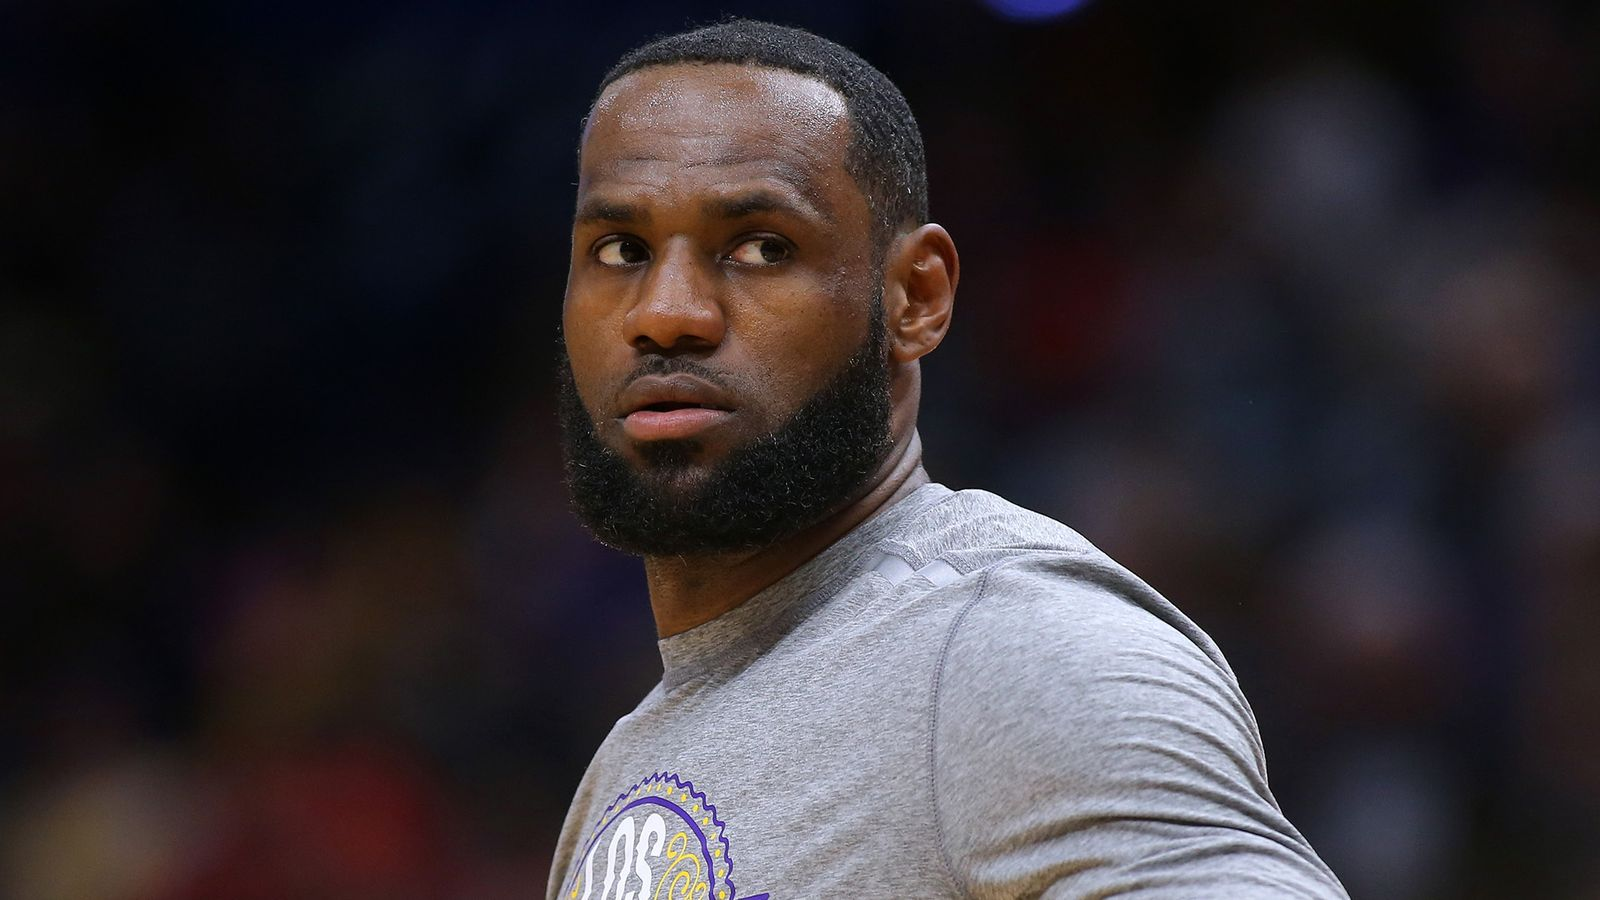 LeBron James has been holding private workouts with teammates?